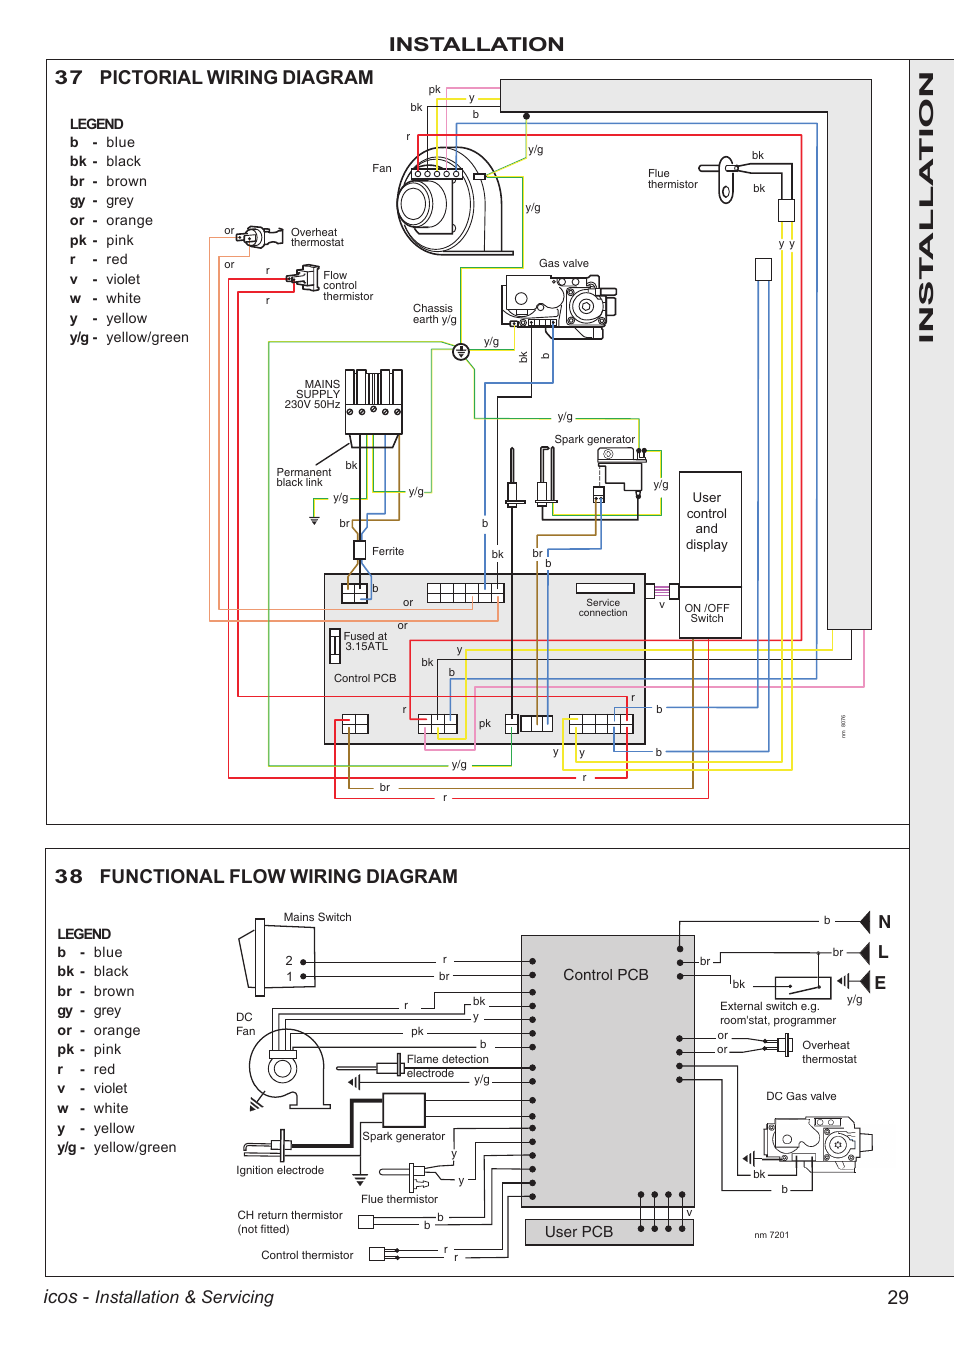 29 icos, Installation, 38 functional flow wiring diagram